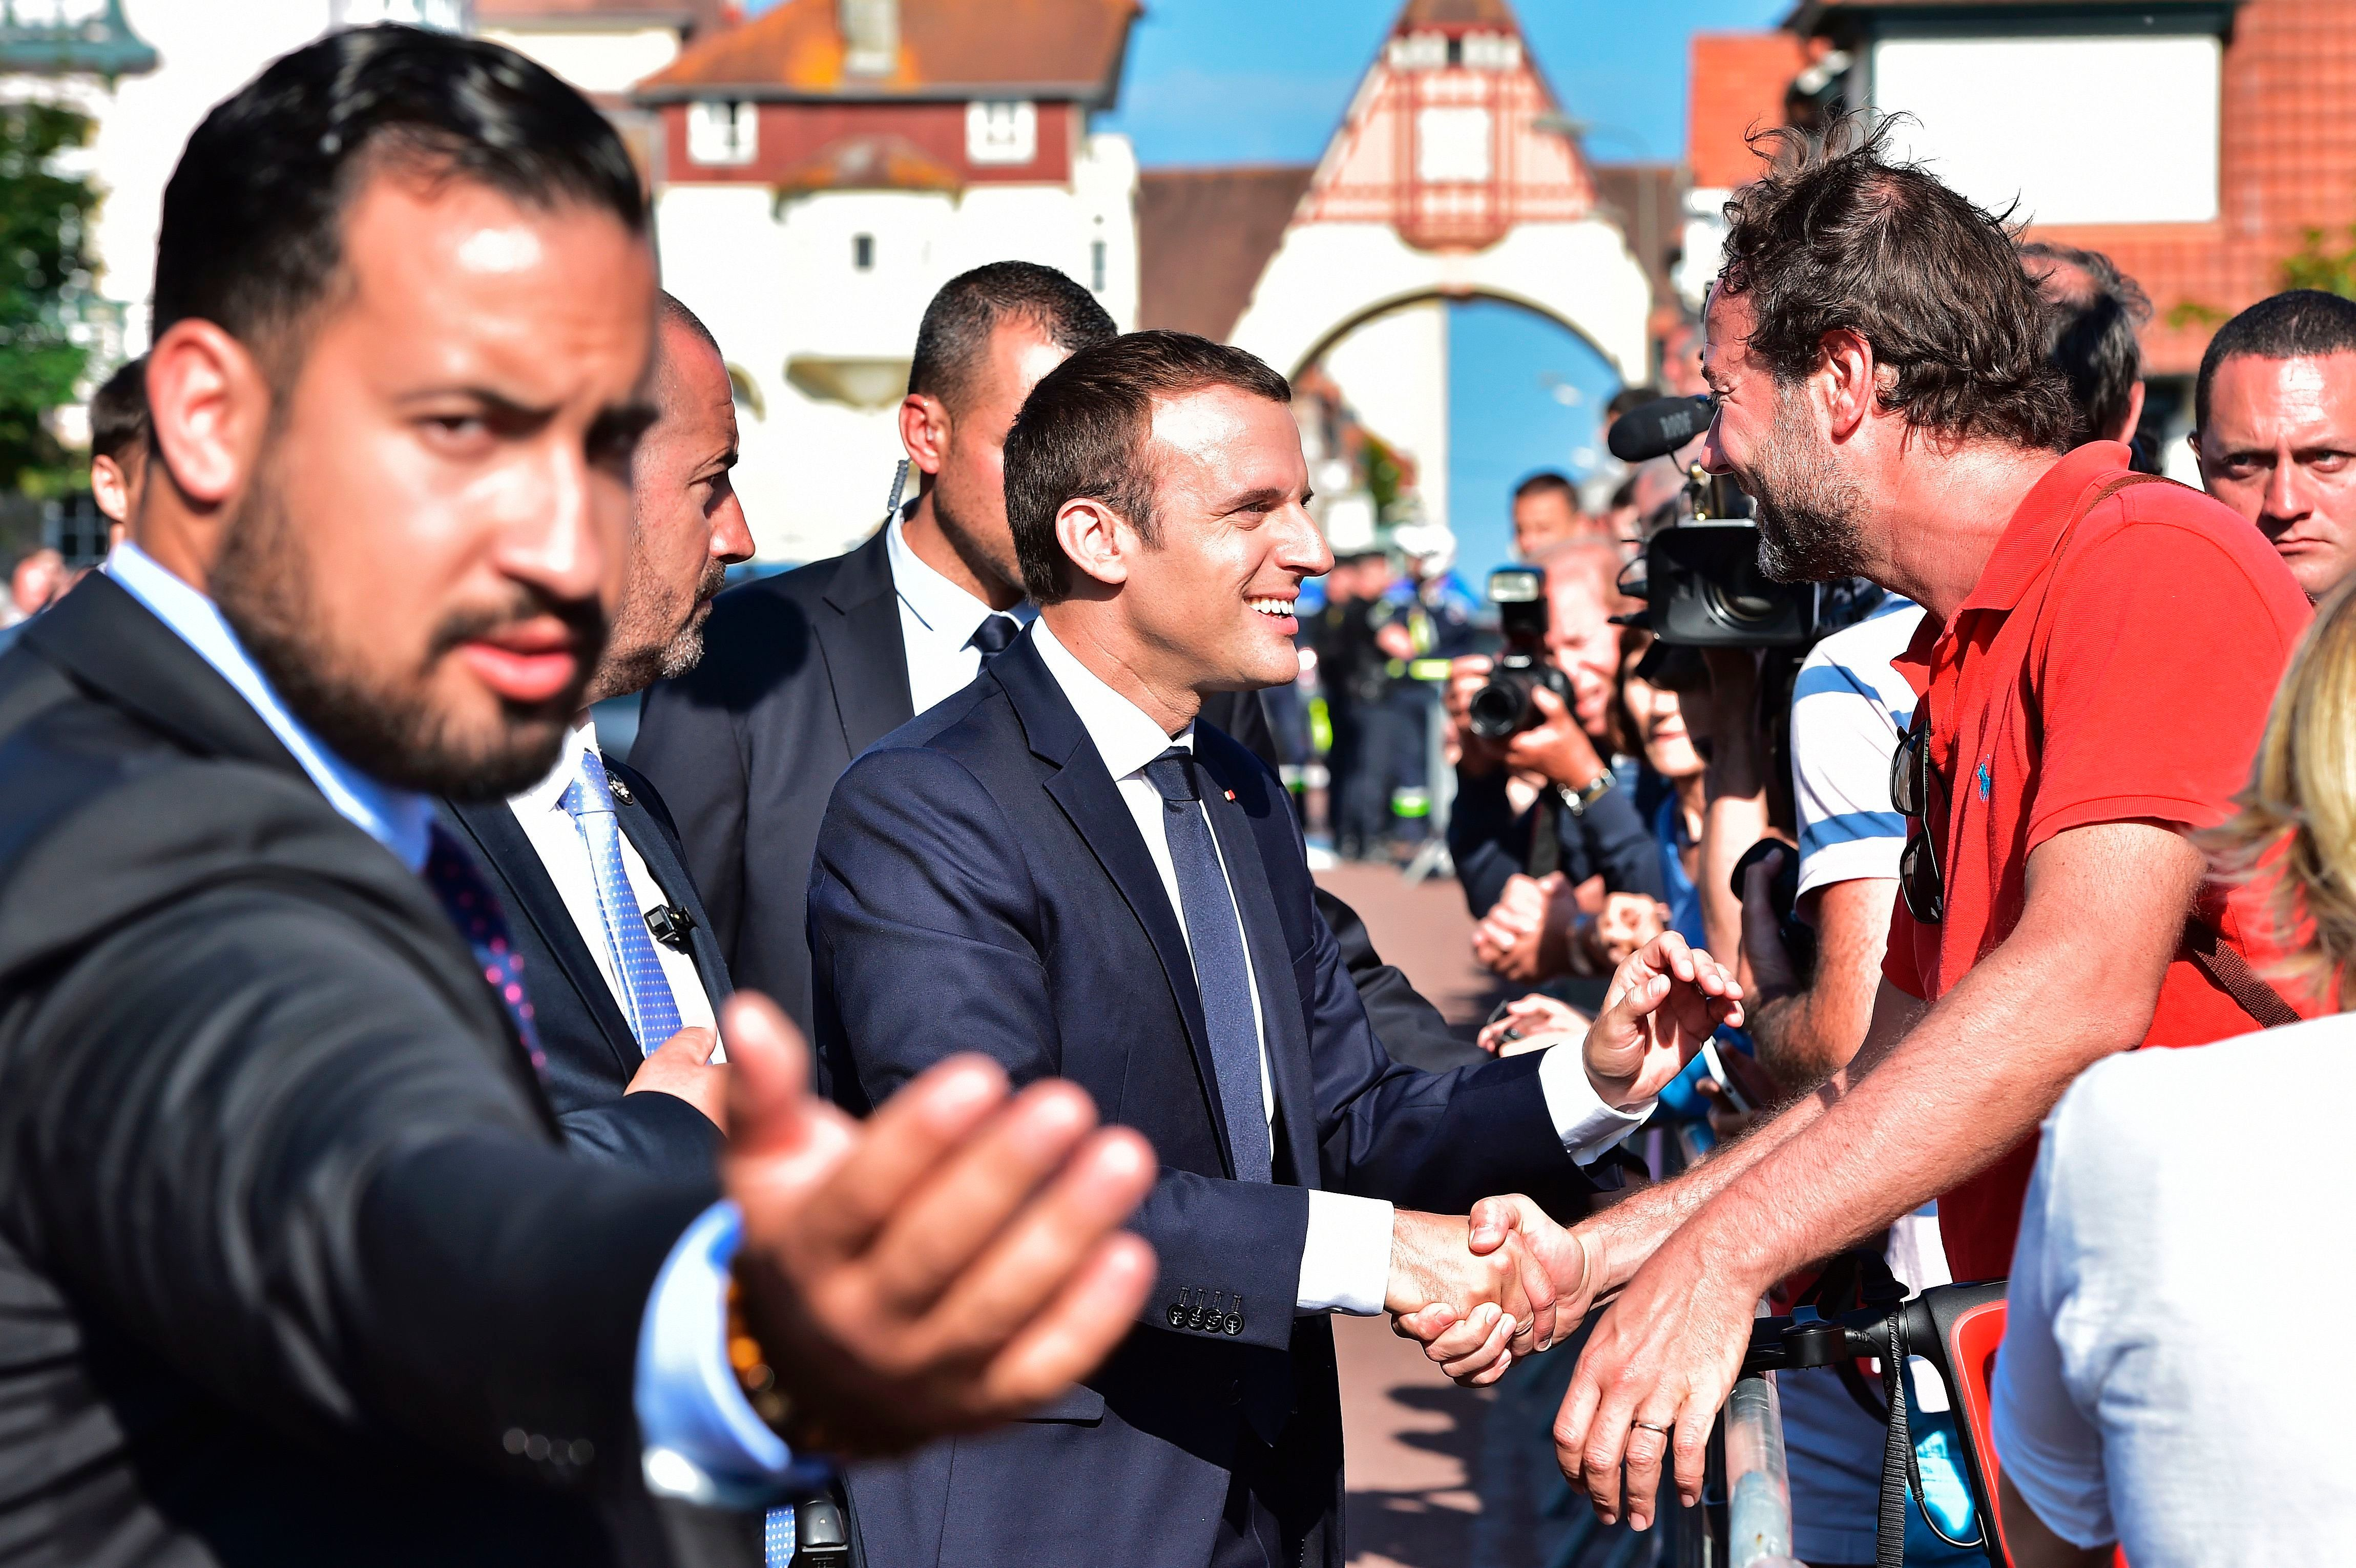 French President Emmanuel Macron (C), flanked by Elysee senior security officer Alexandre Benalla (L), shakes hands with people after he voting in Le Touquet, northern France, during the second round of the French parliamentary elections (elections legislatives in French), on June 18, 2017. (Photo by CHRISTOPHE ARCHAMBAULT / POOL / AFP)        (Photo credit should read CHRISTOPHE ARCHAMBAULT/AFP/Getty Images)